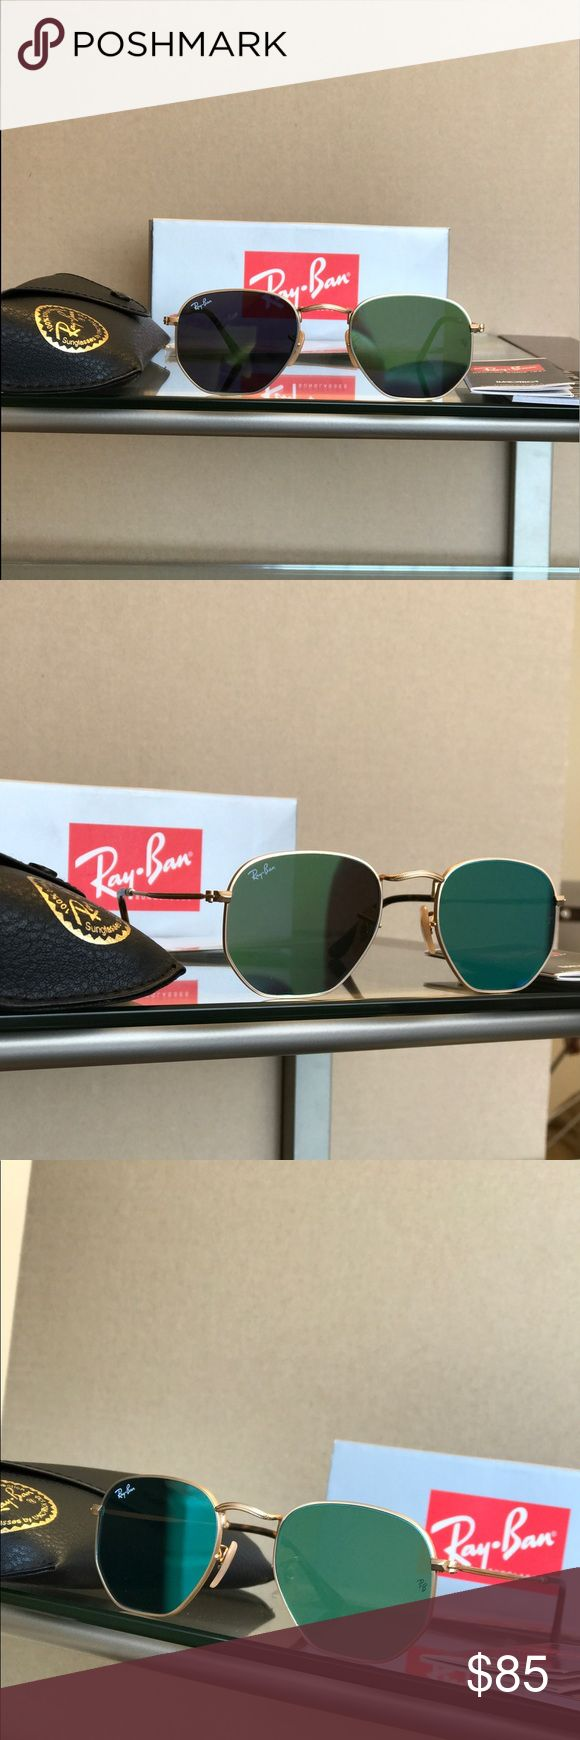 100% Authentic Ray-Ban Hexagonal Sunglasses 51mm Get yourself a beautiful pair of brand new Ray-Ban Hexagonal sunglasses for 65% off retail price! Please refer to the details below to get a better idea of what you are purchasing:  •These are 100% Brand Ne